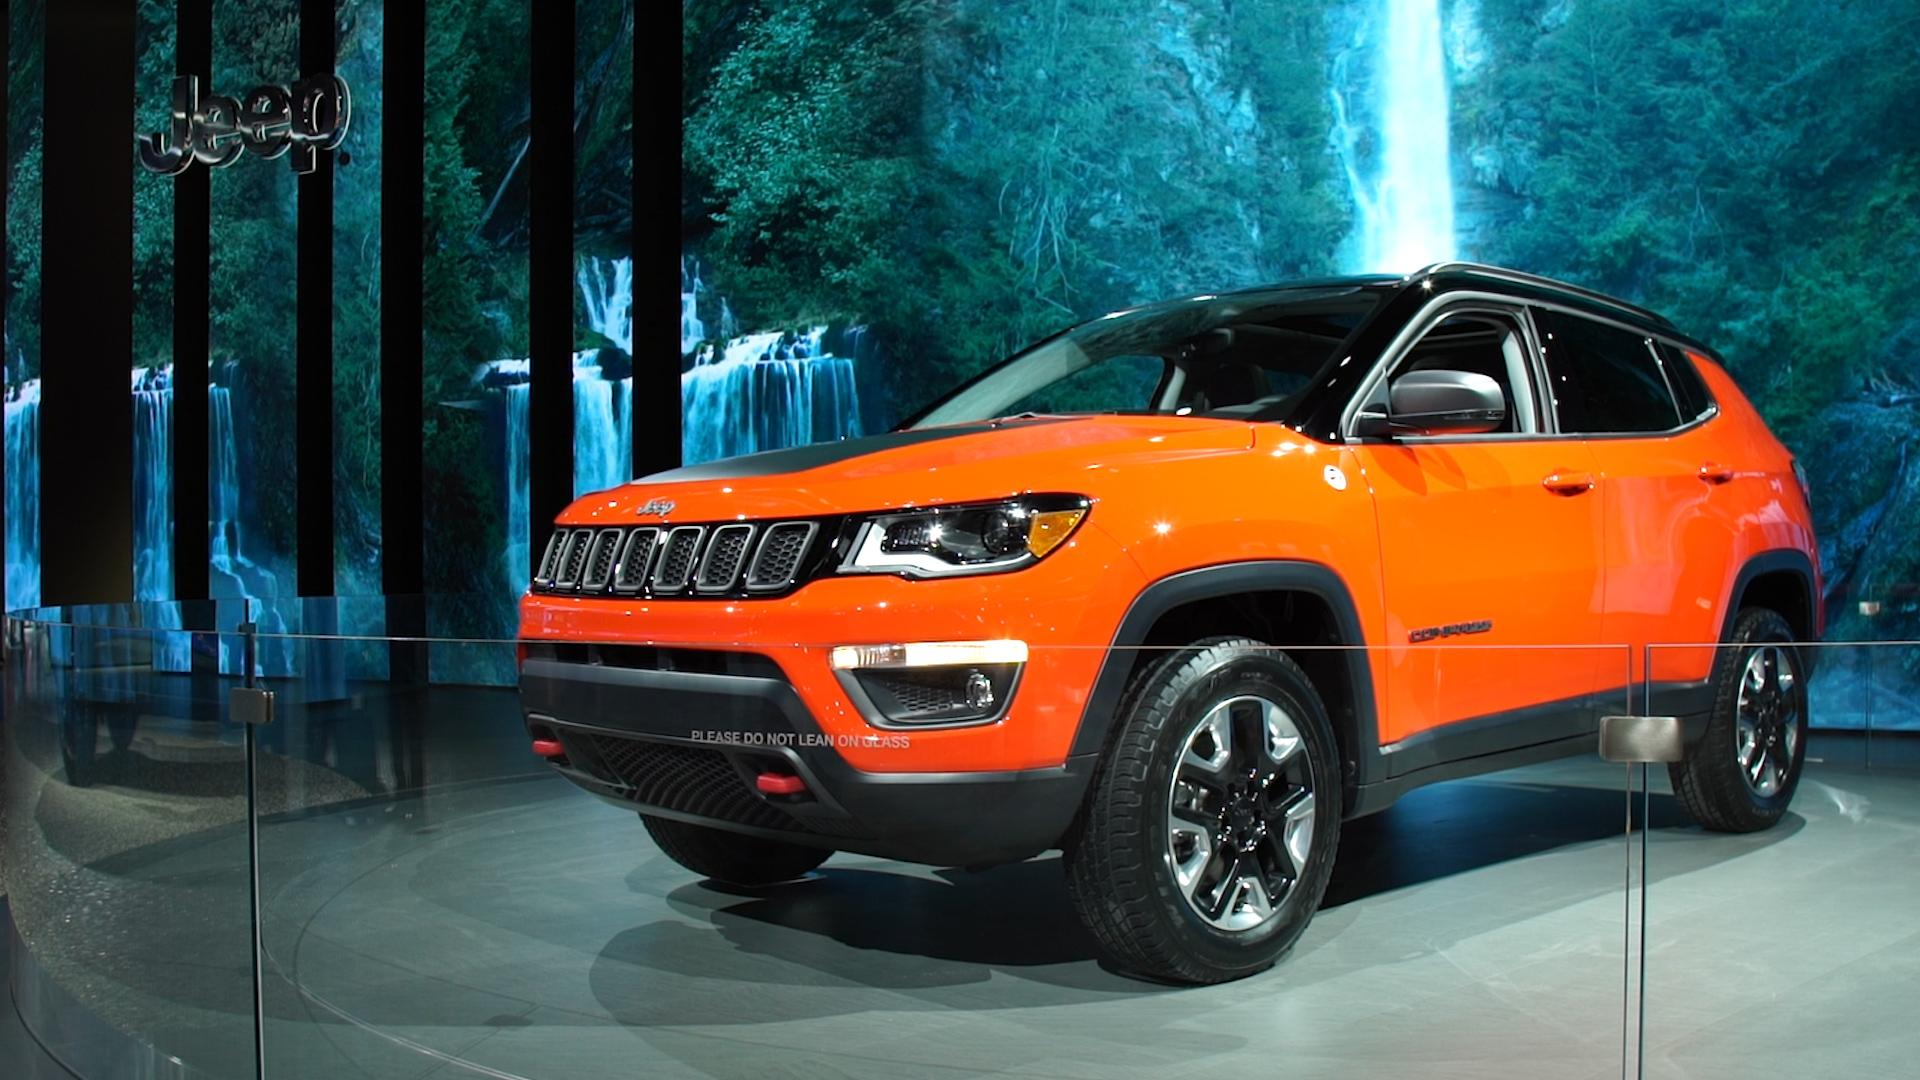 preview: 2017 jeep compass - consumer reports